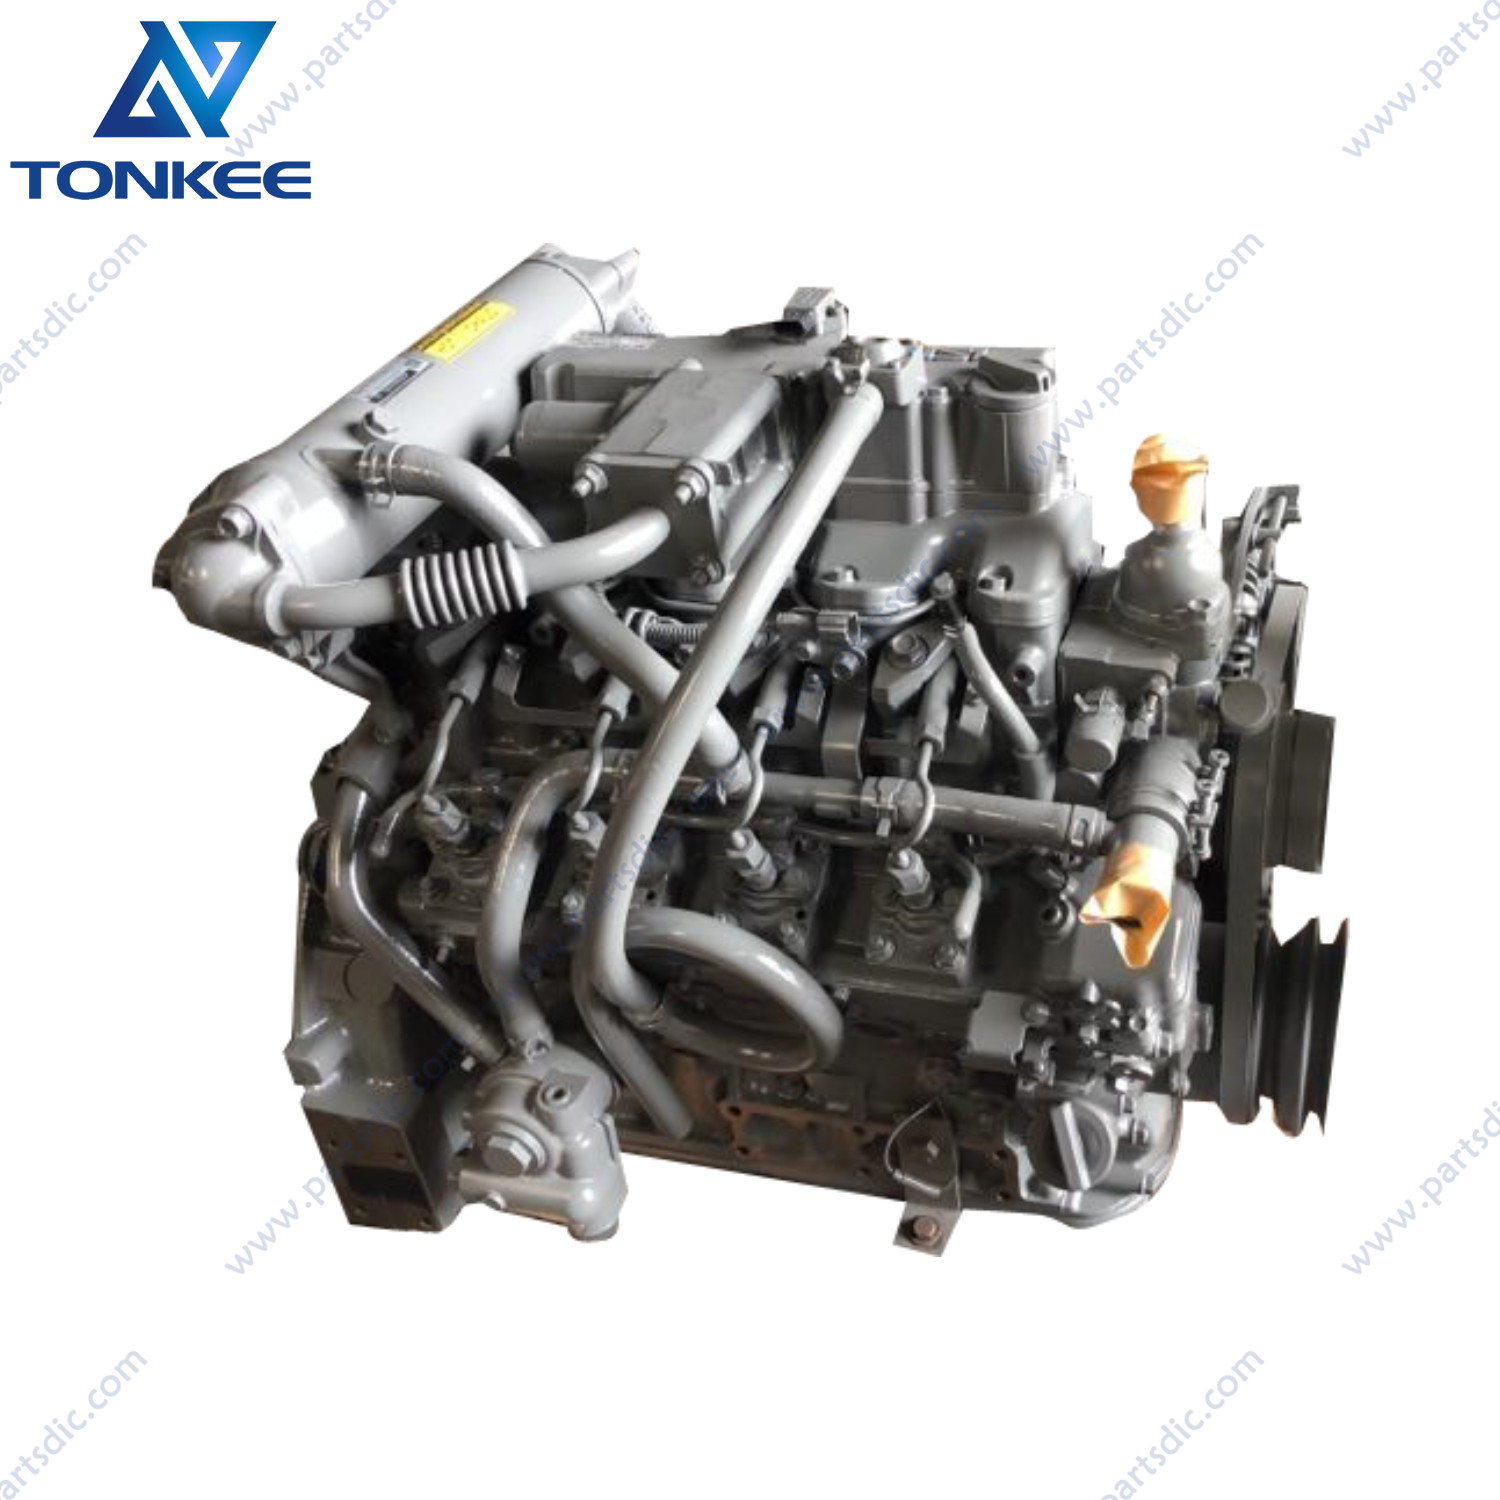 heavy equipment parts 4LE2 GK-4LE2XKSC AU-4LE2XYSS complete diesel engine assy CX75 CX80 ZX75 ZX80 SK75 excavator diesel engine assembly for excavator